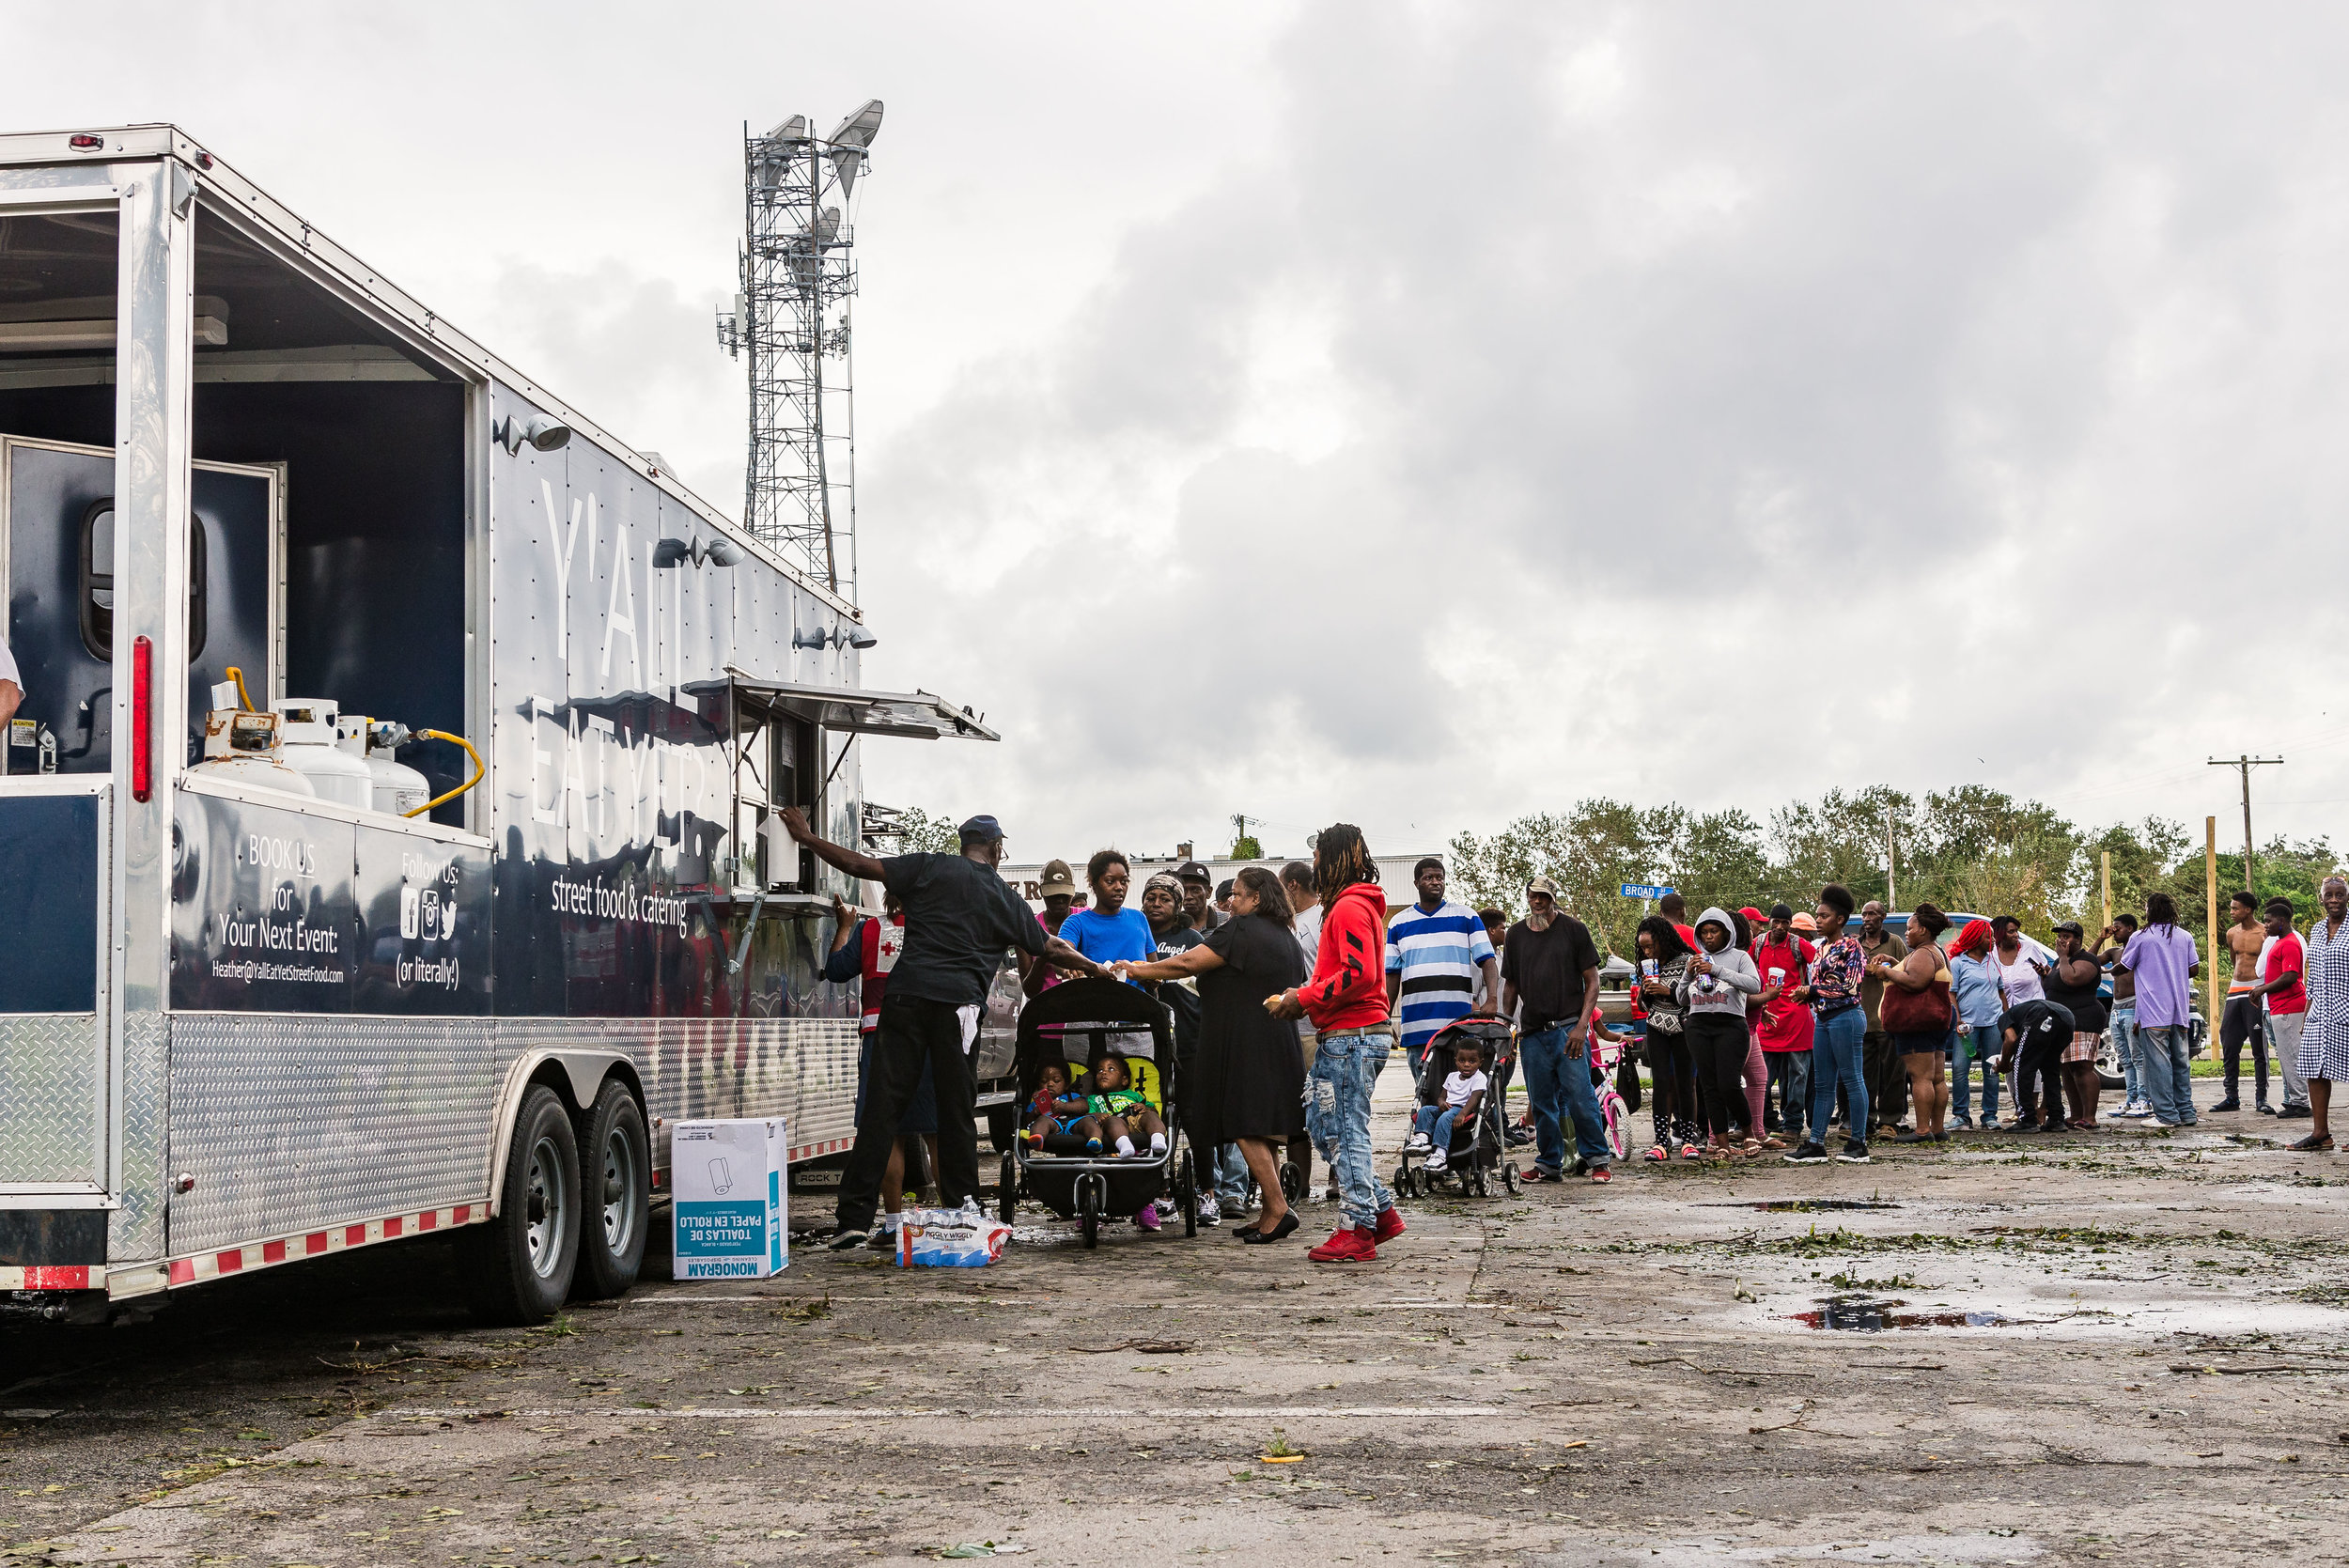 """September 16, 2018, New Bern, NC- New Bern residents line up to receive meals from food truck vendor """"Y'All Eat Yet"""" and the American Red Cross in the parking lot of Trinity Chapel AME Zion Church at Cawford Street and Broad Street in the aftermath of Hurricane Florence."""